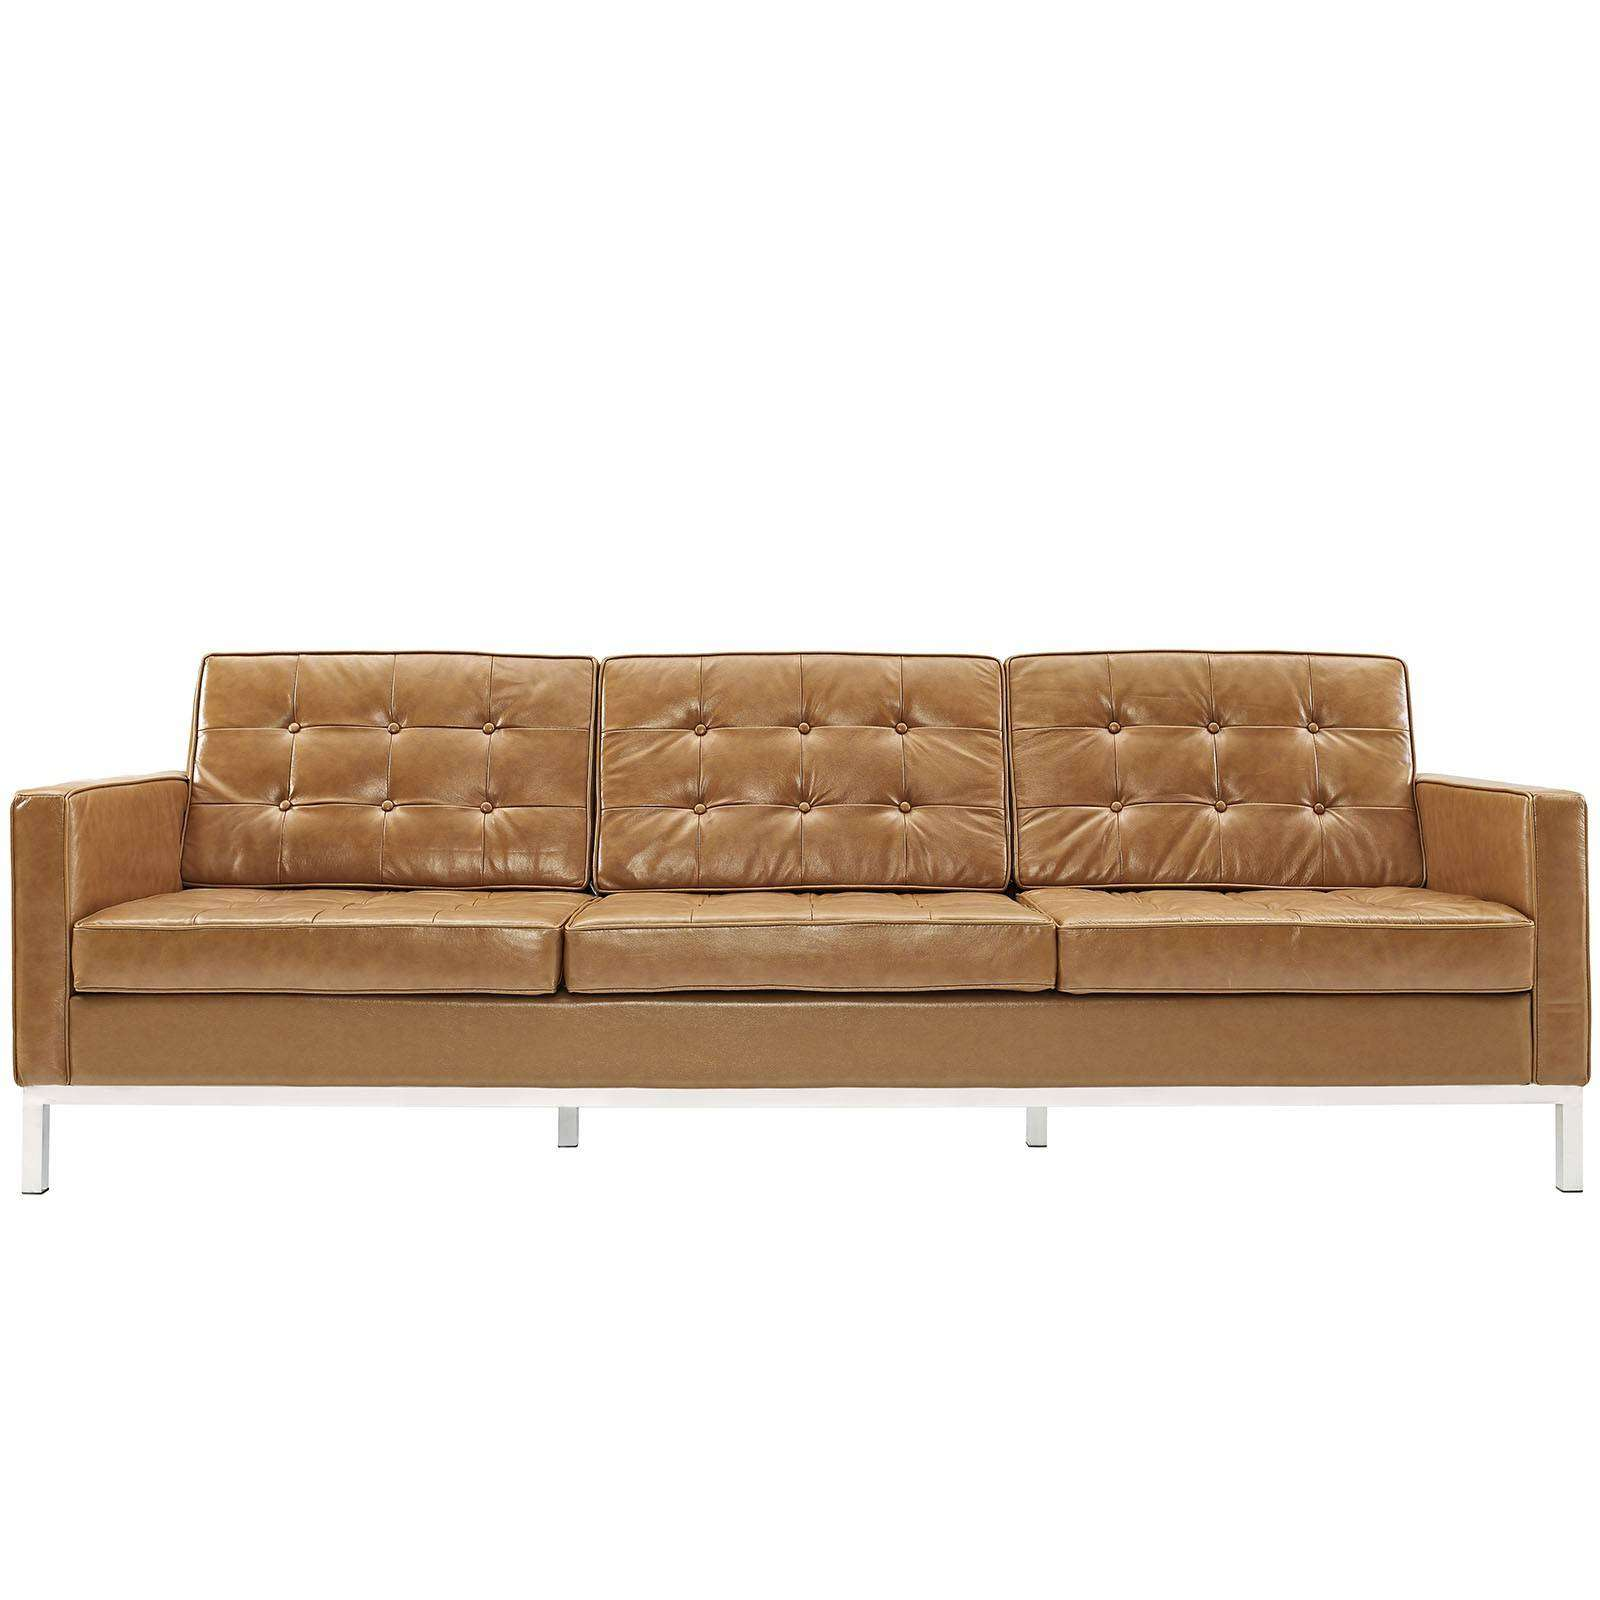 Sofa Florence Knoll Style Sofa Couch Leather